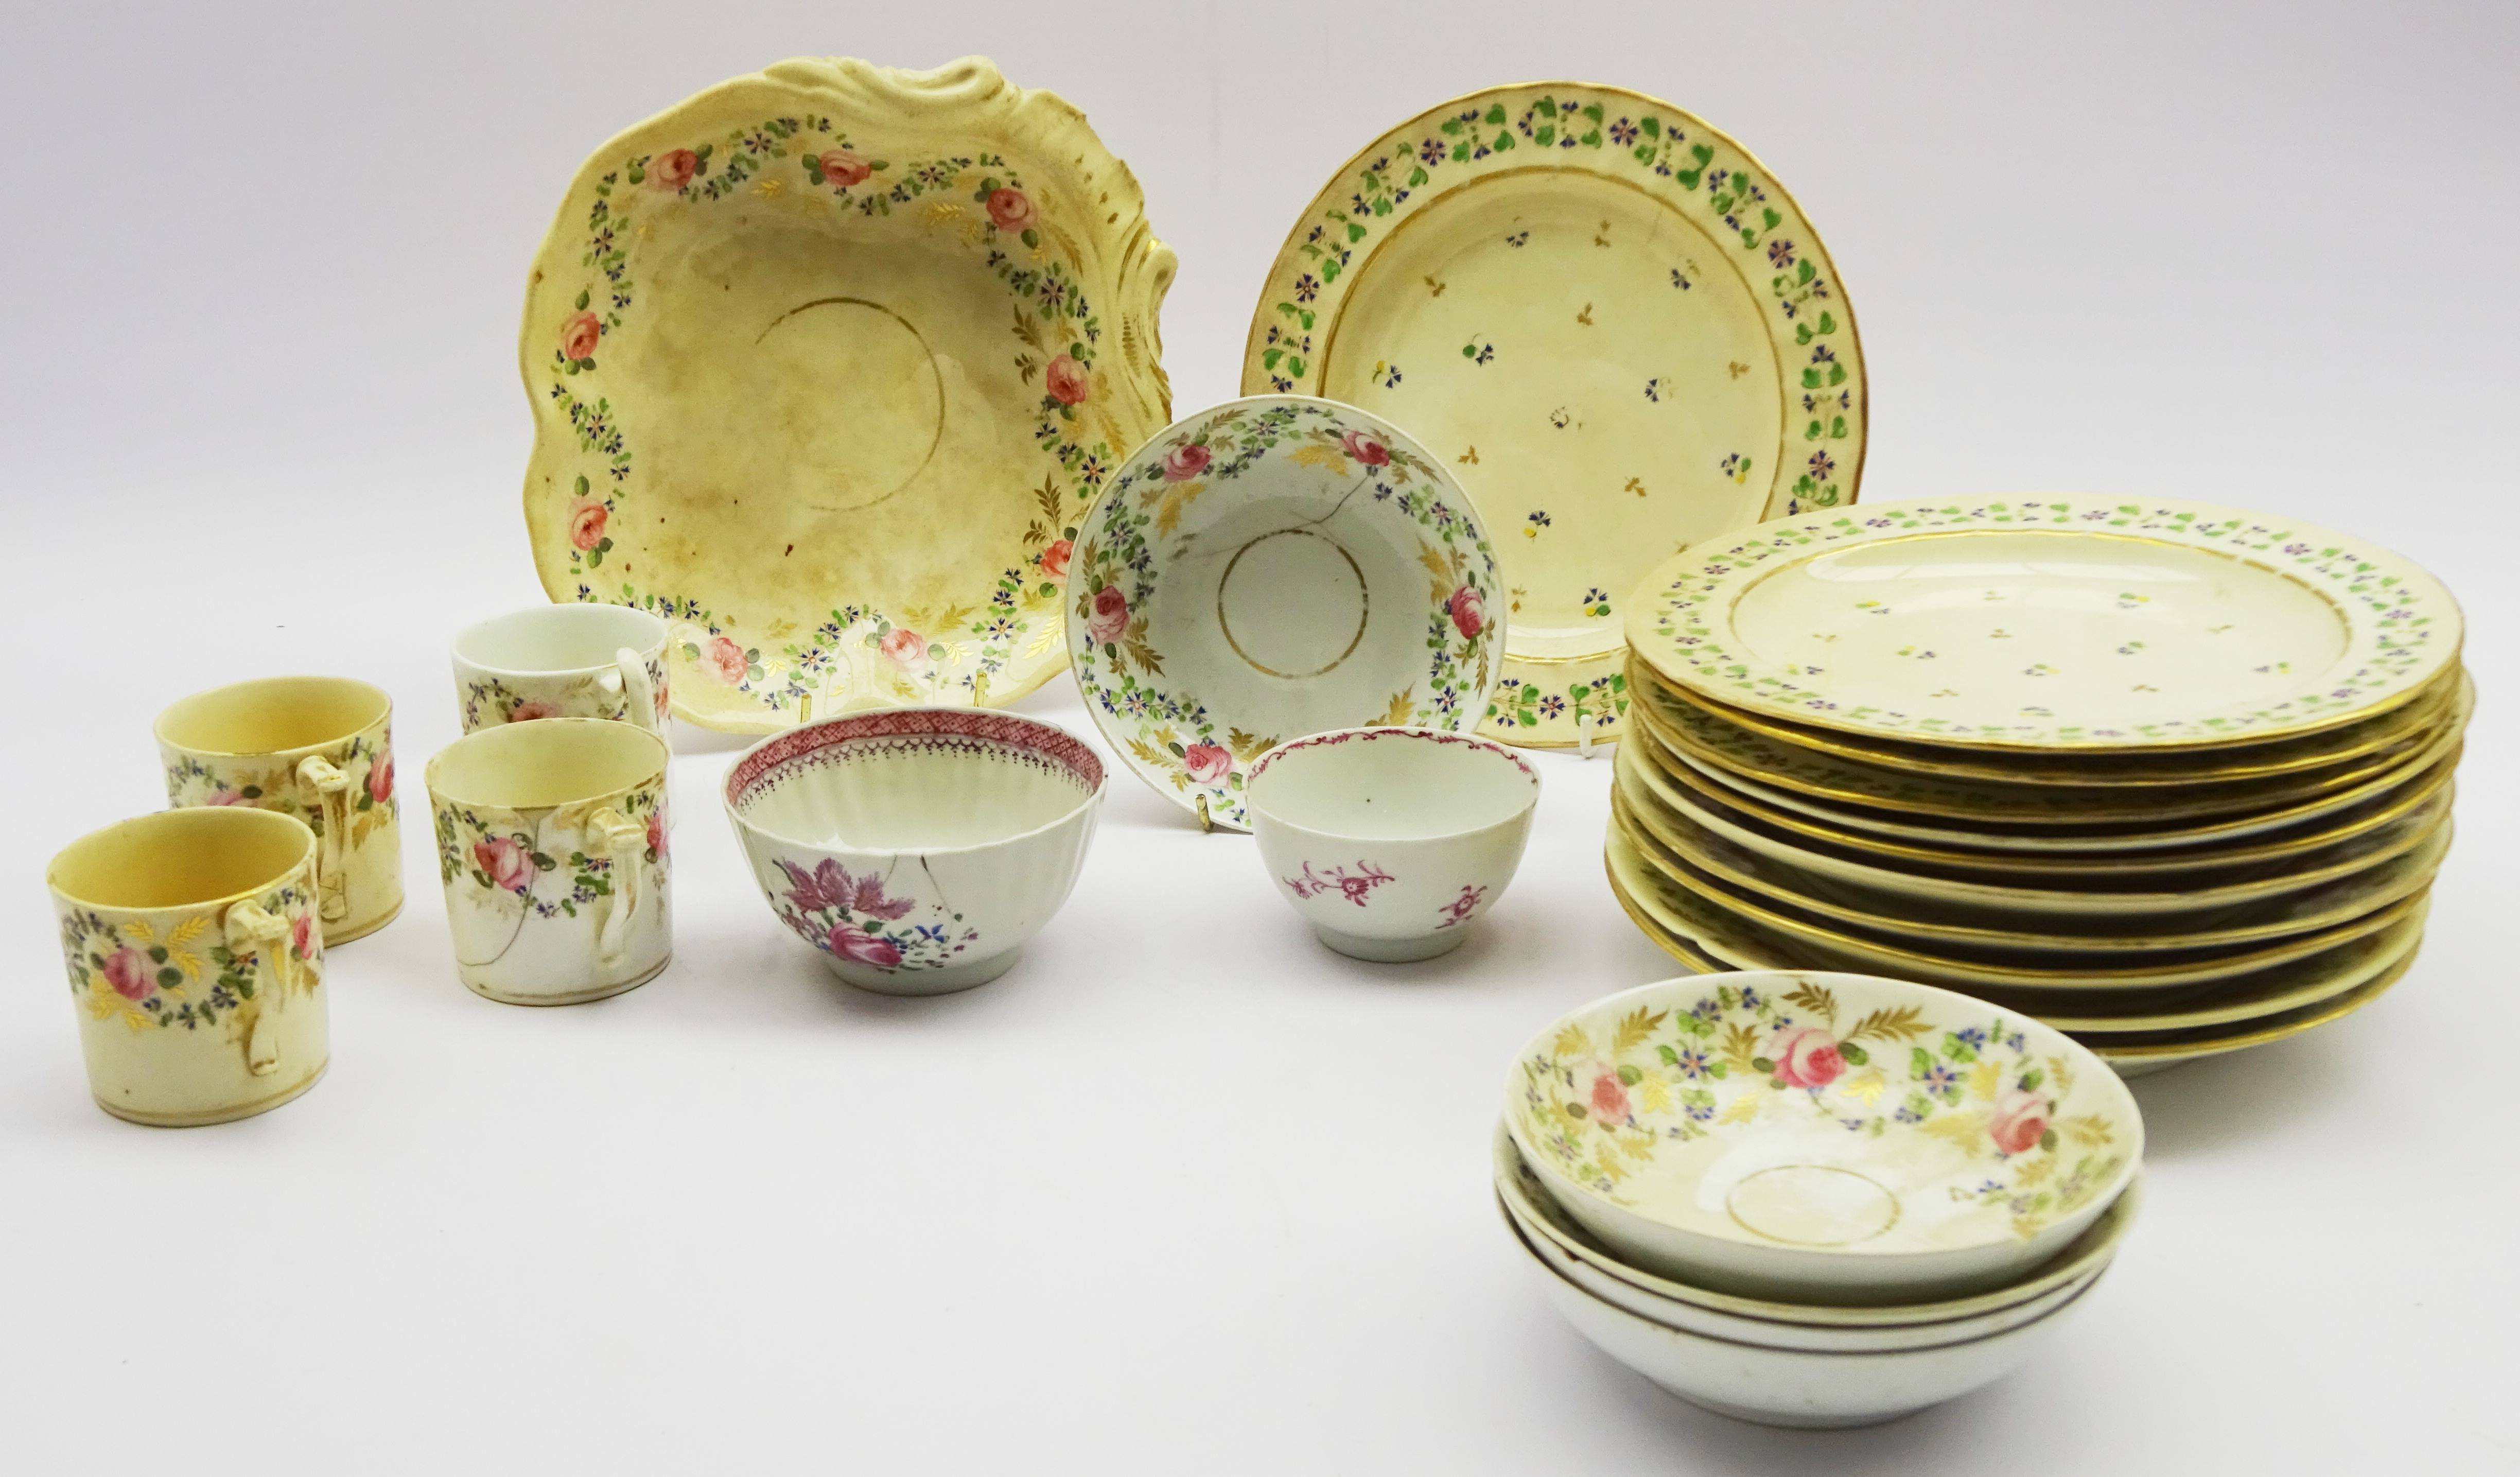 Lot 41 - Early 19th century Derby table ware decorated with floral sprays and two Newhall bowls (23)